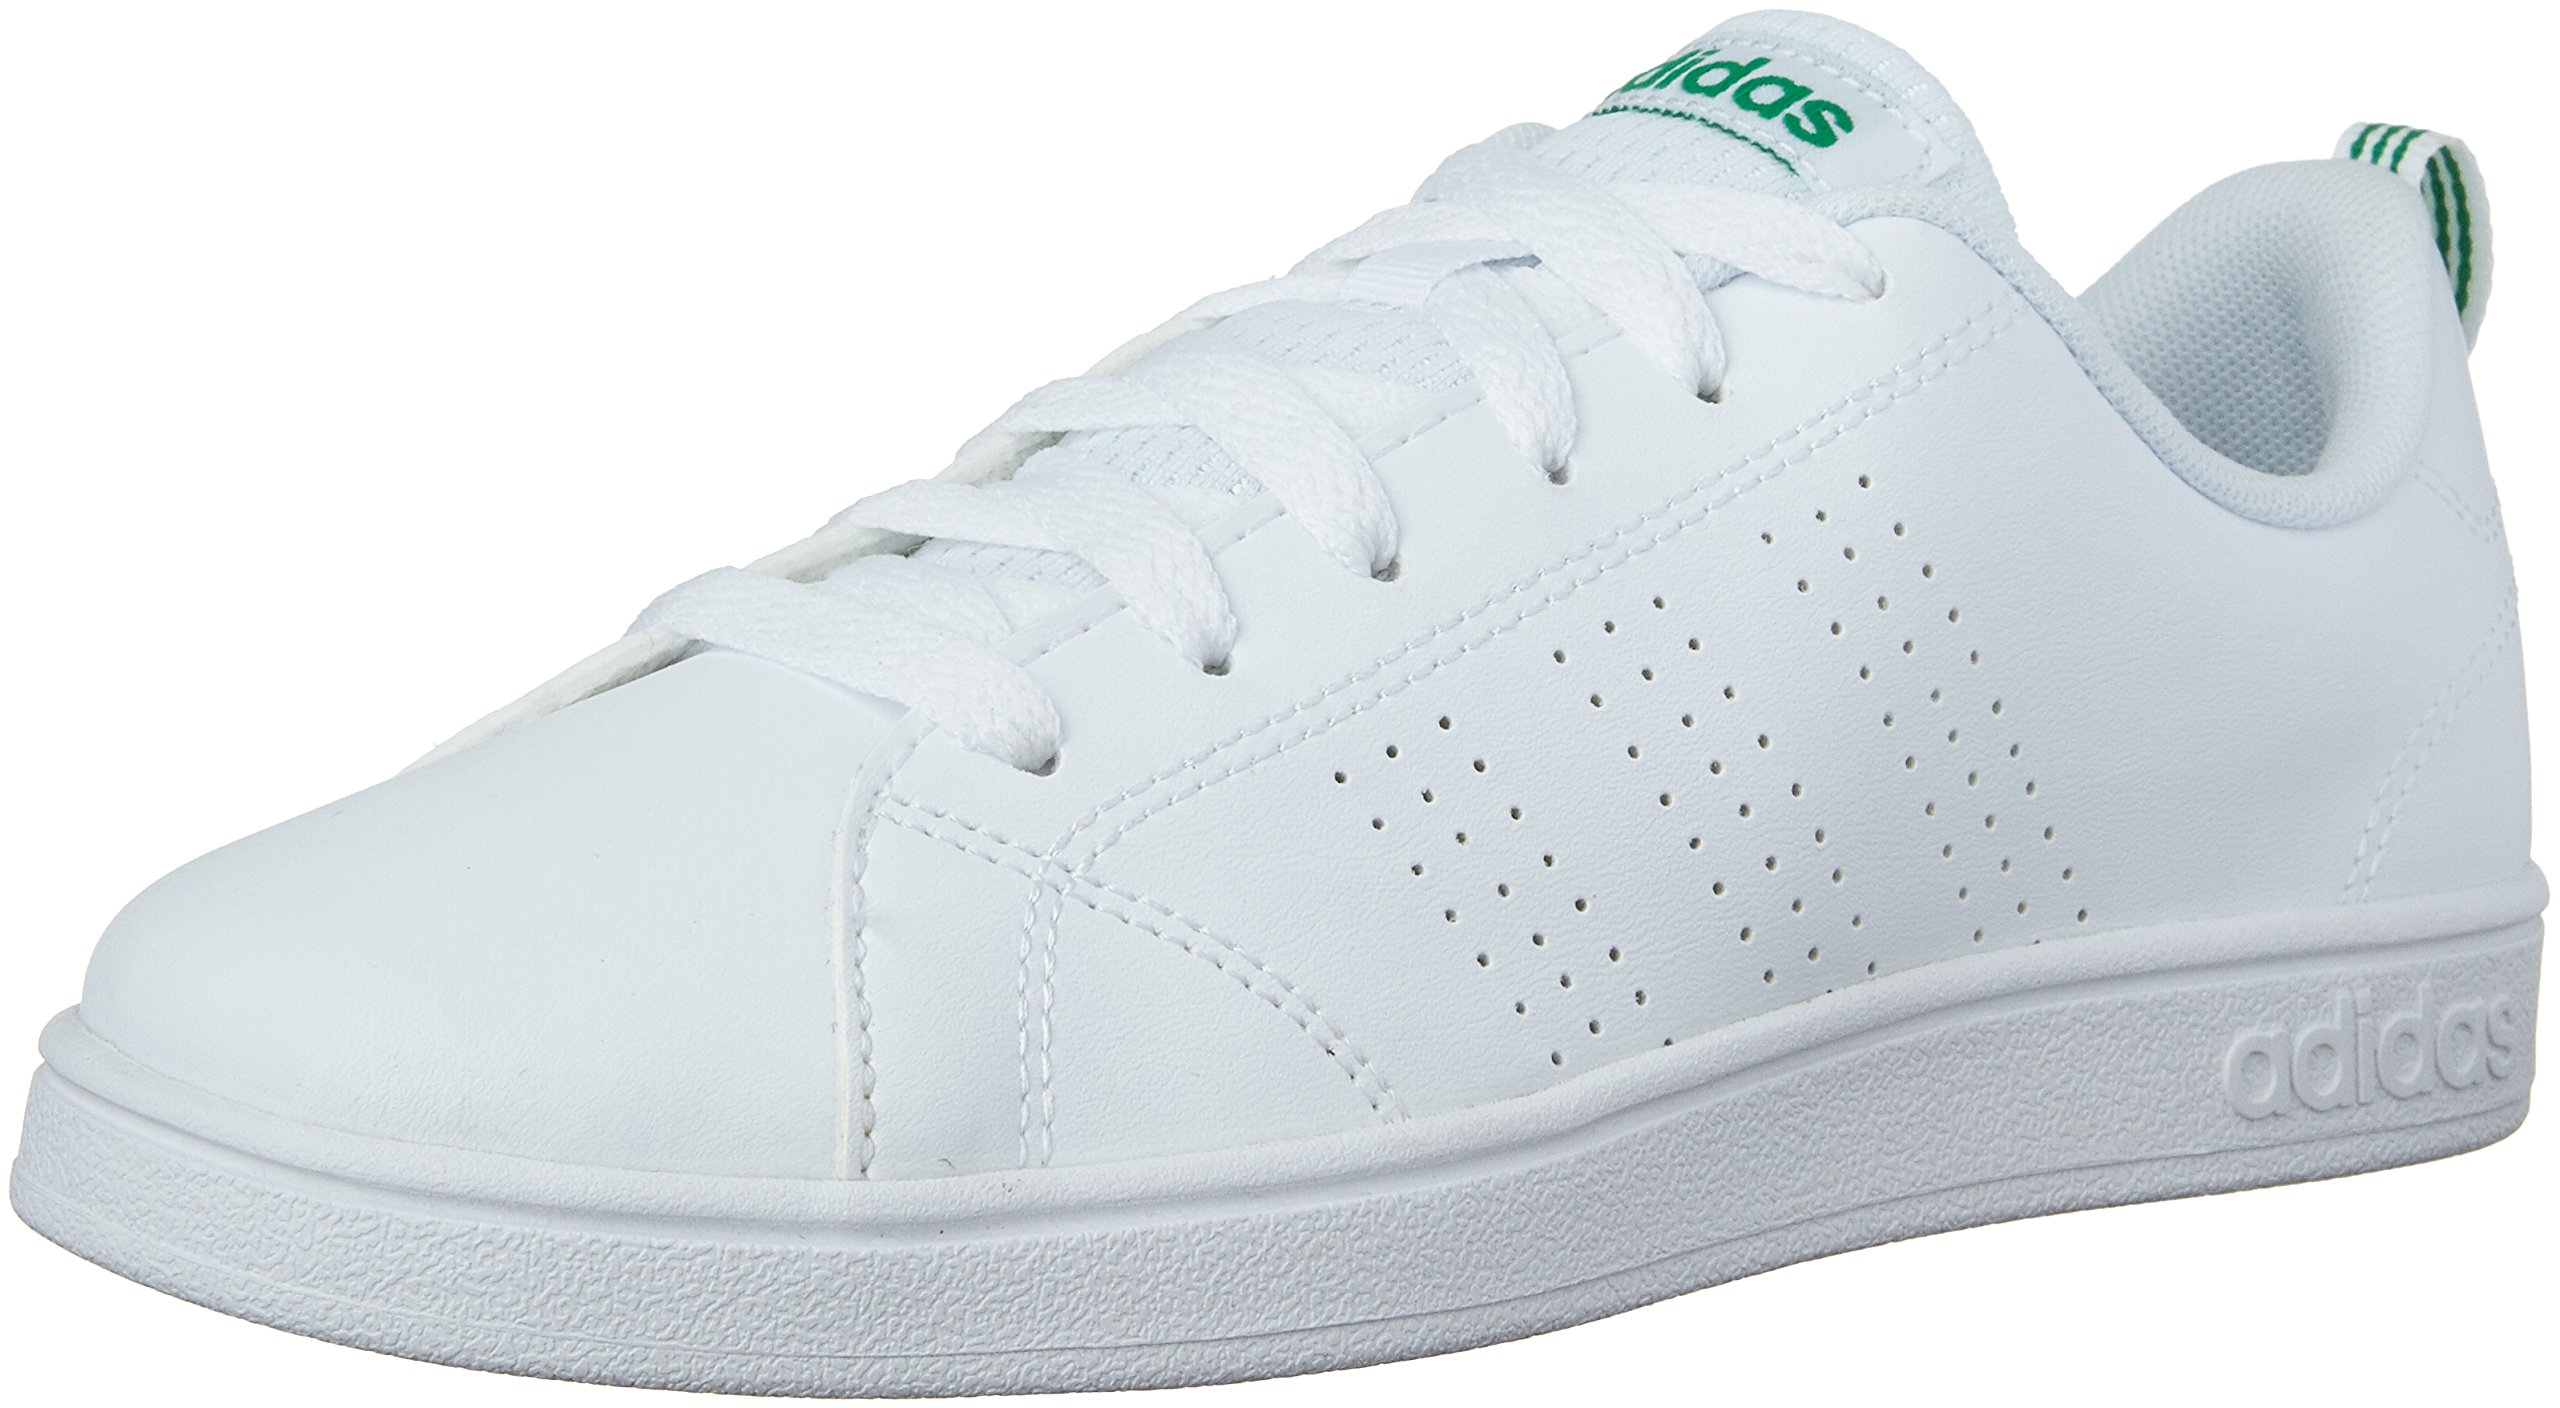 adidas Kids' VS Advantage Clean Sneaker, White/White/Green, 1.5 M US Little Kid by adidas (Image #1)